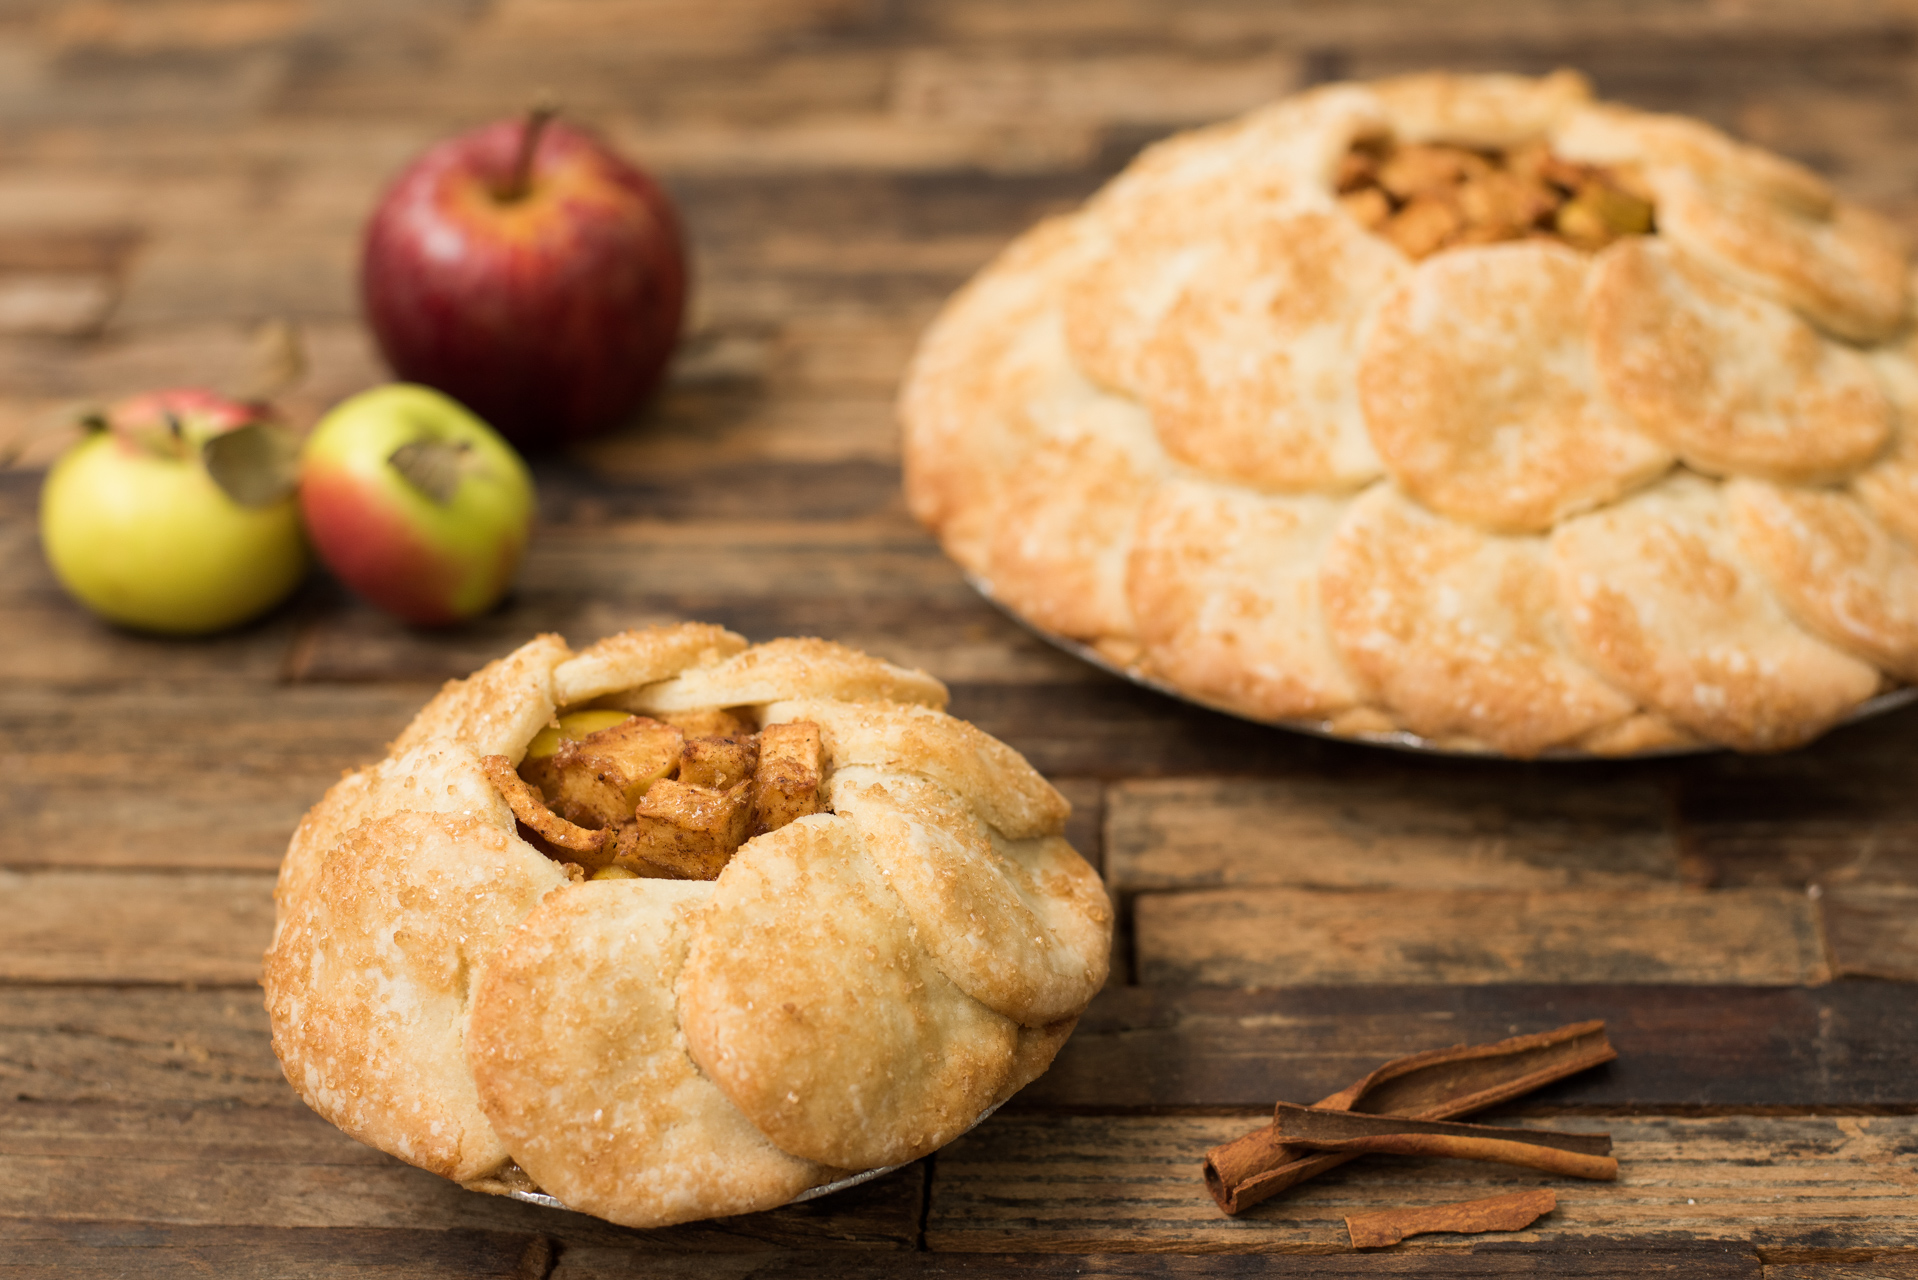 Copy of Gluten-free Apple Pie Small